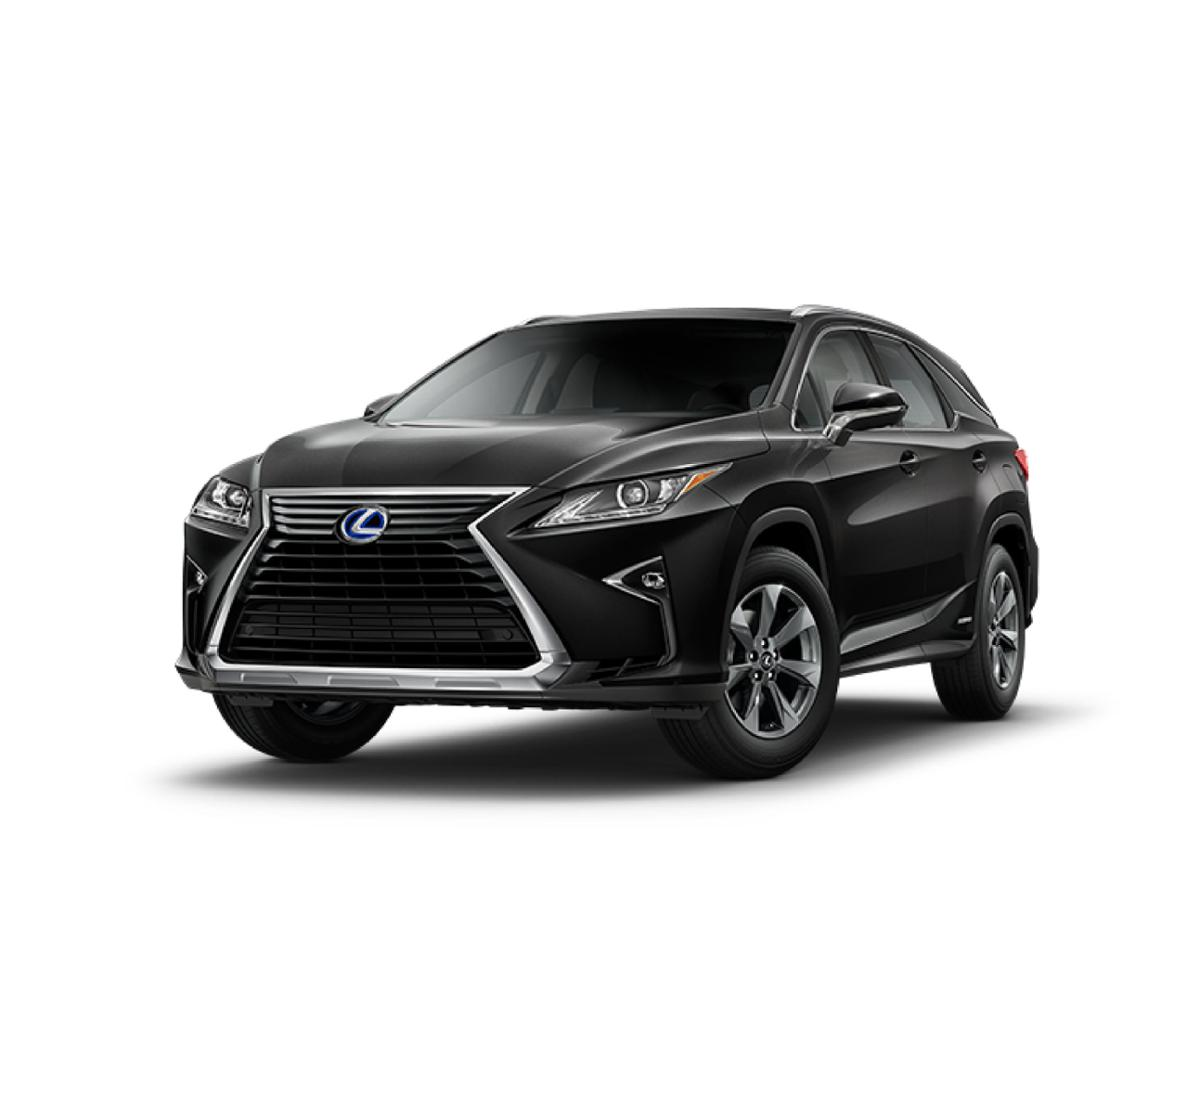 2018 Lexus RX 450hL Vehicle Photo in Larchmont, NY 10538